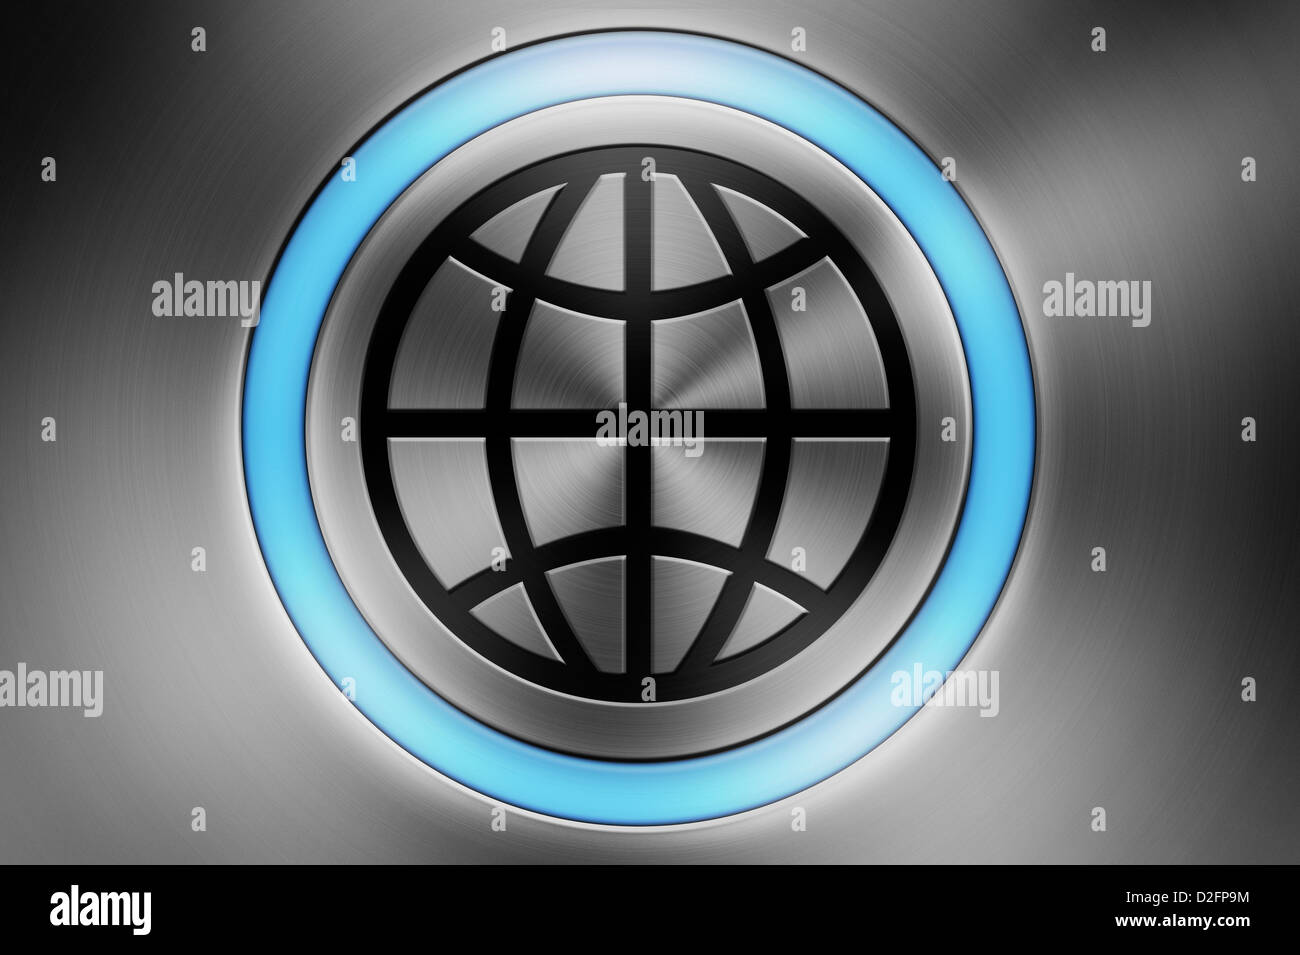 Glowing computer button with a globe symbol - global technology / communication / business / world / globalisation - Stock Image